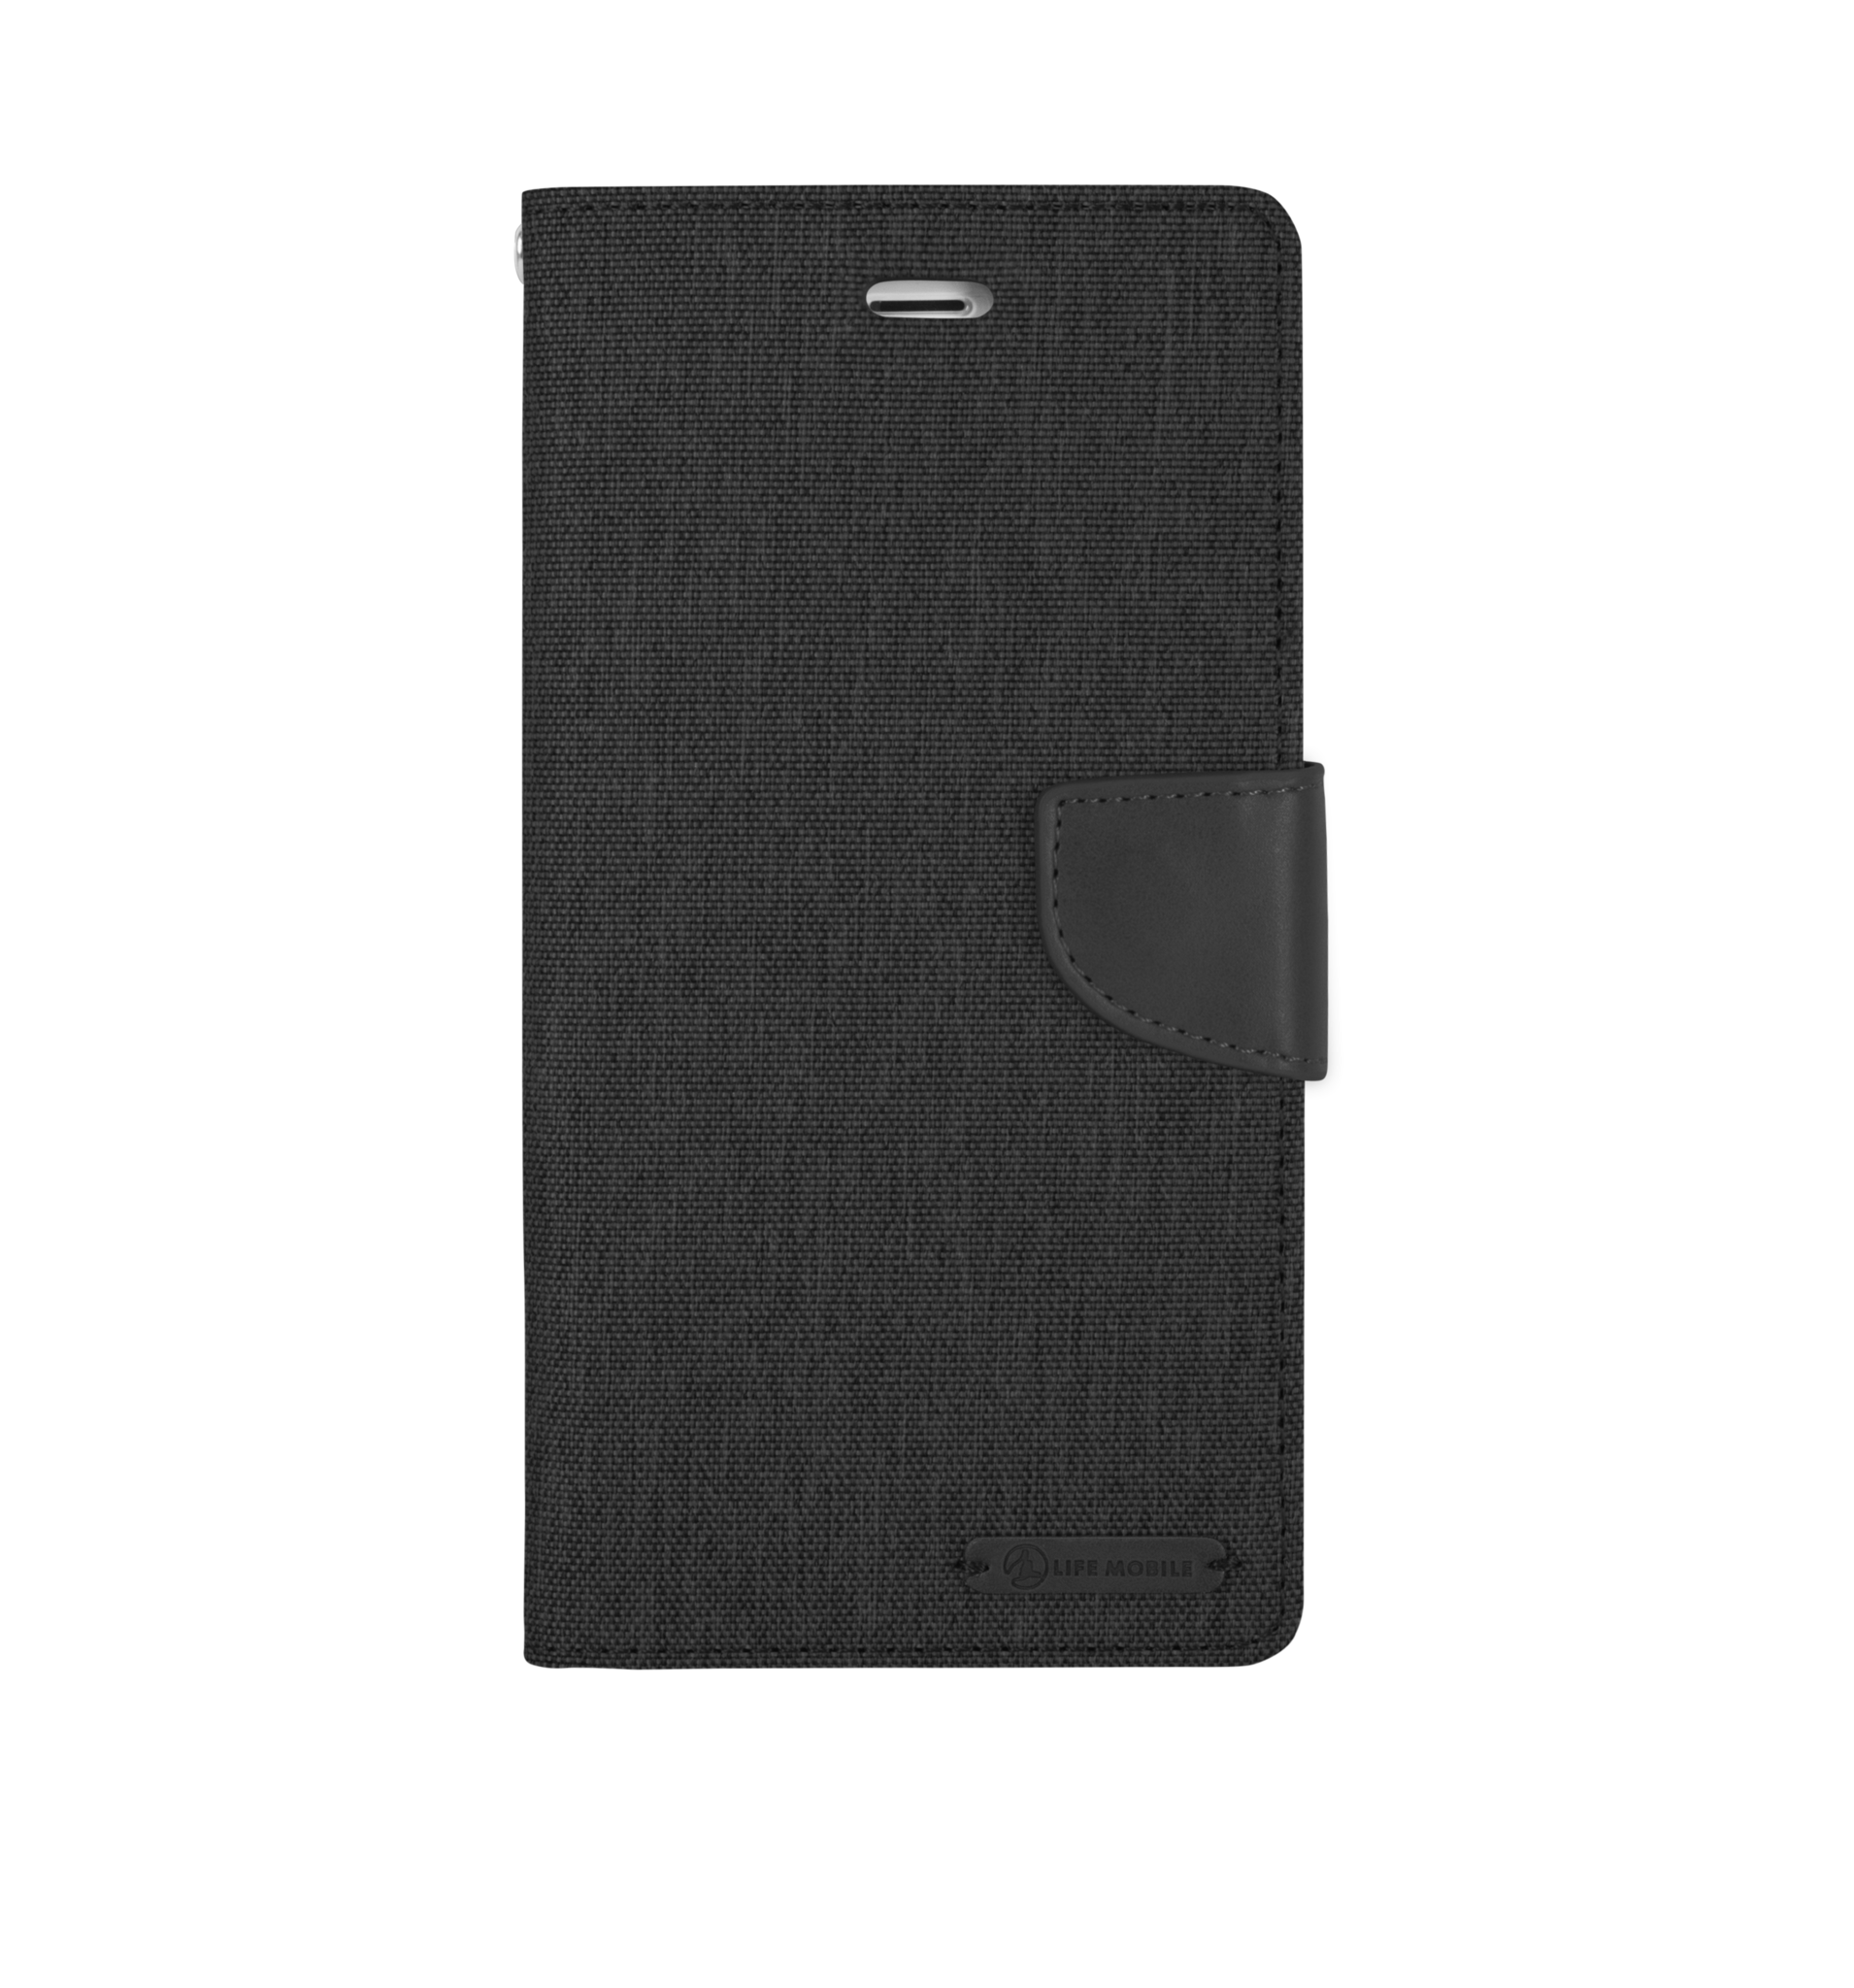 CANVAS Wallet - Samsung Galaxy Note 5